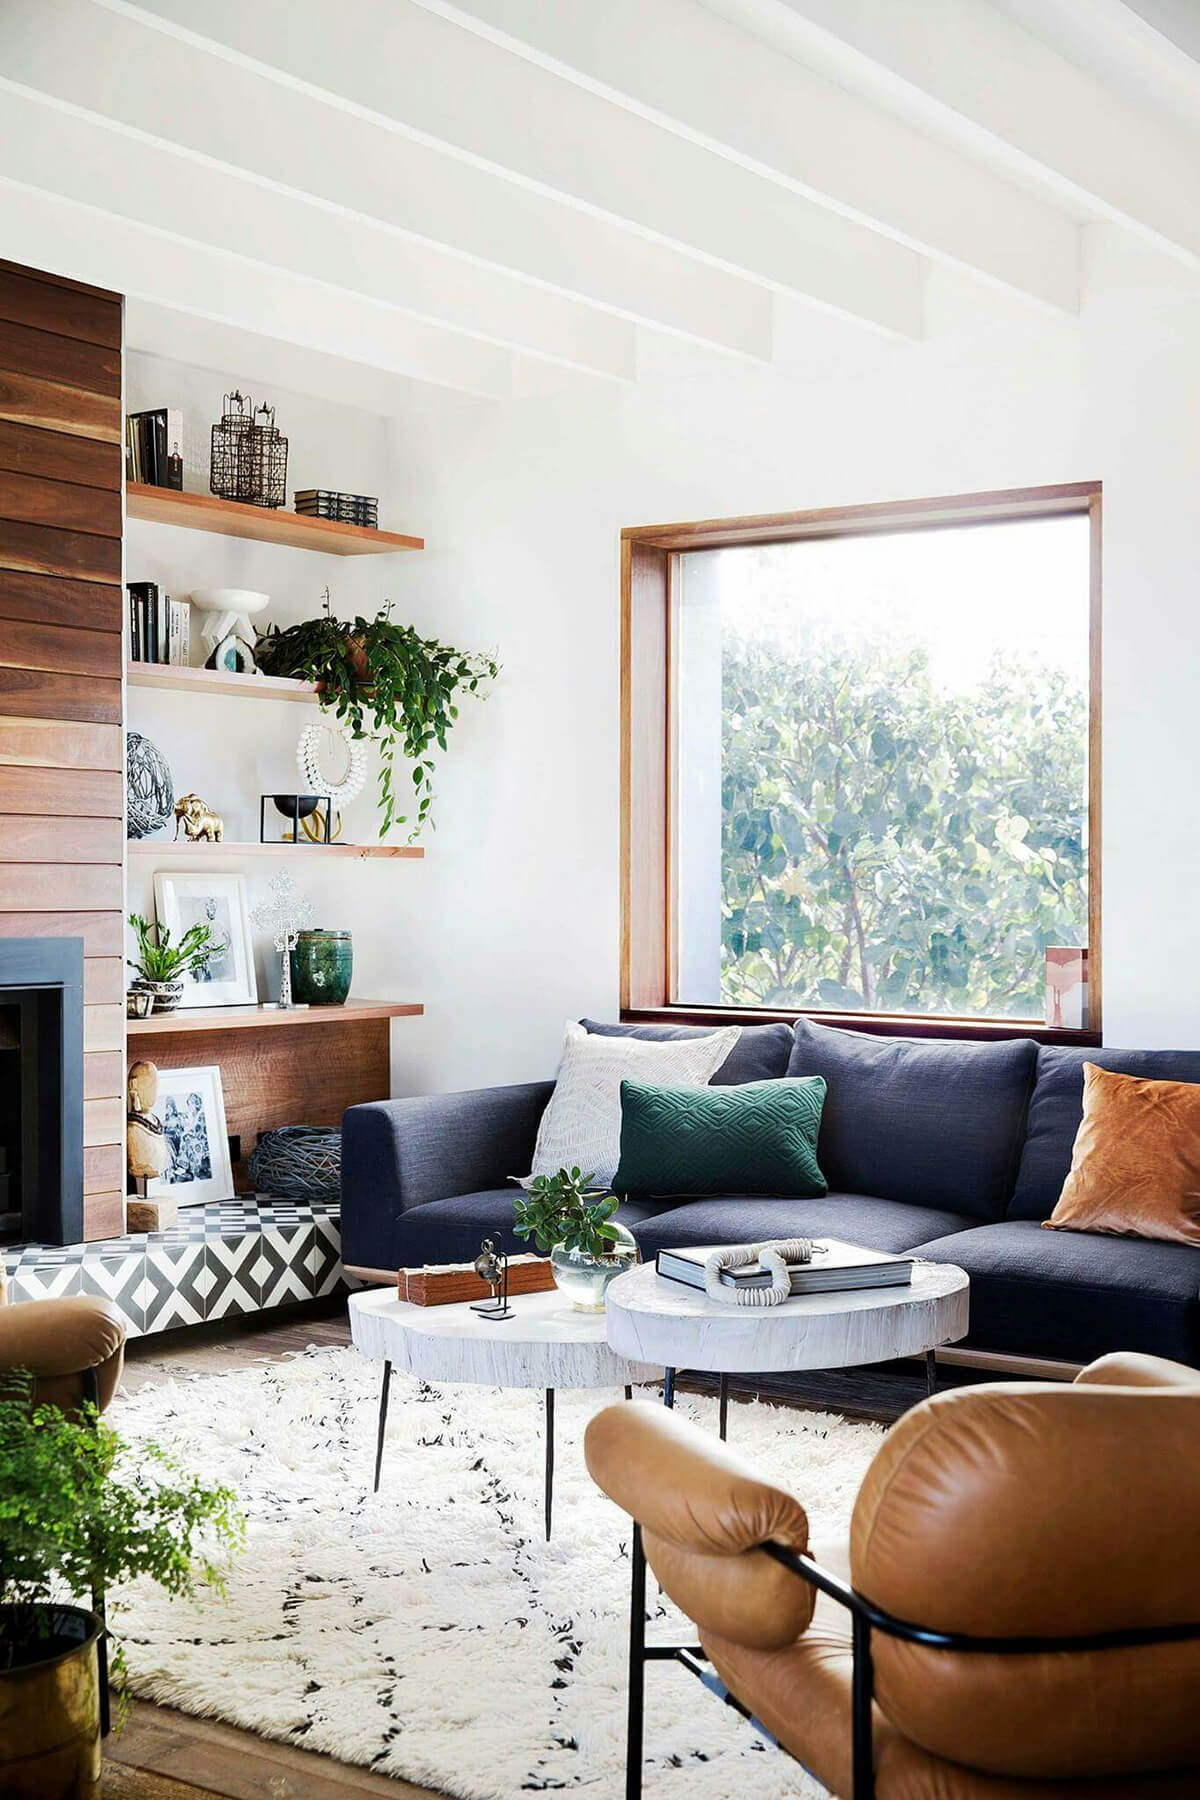 Contemporary Living Room Decorating Ideas Awesome 26 Best Modern Living Room Decorating Ideas and Designs for 2019